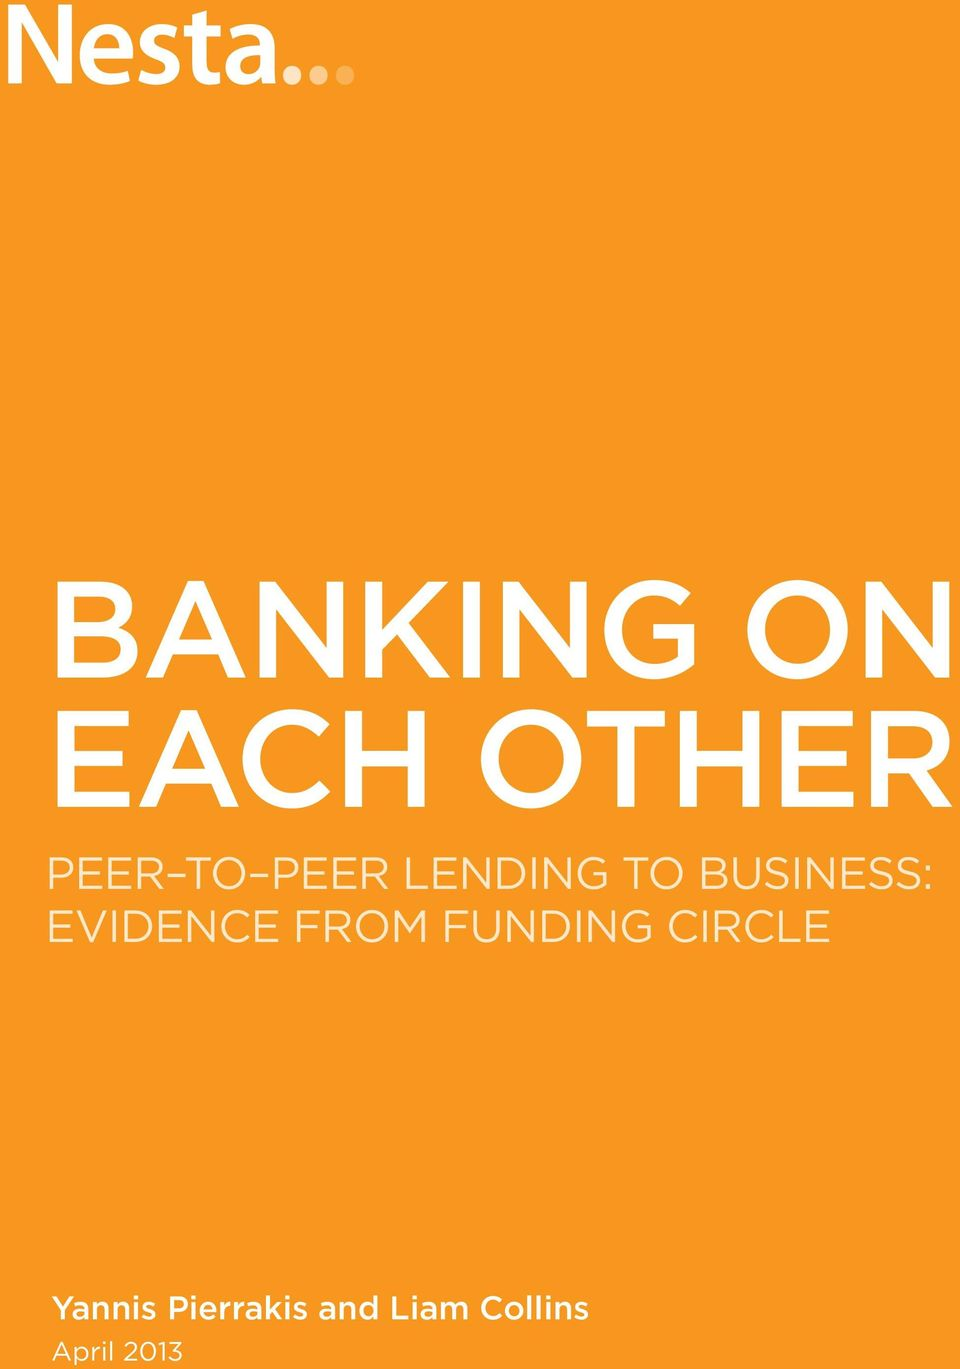 business: Evidence from Funding Circle